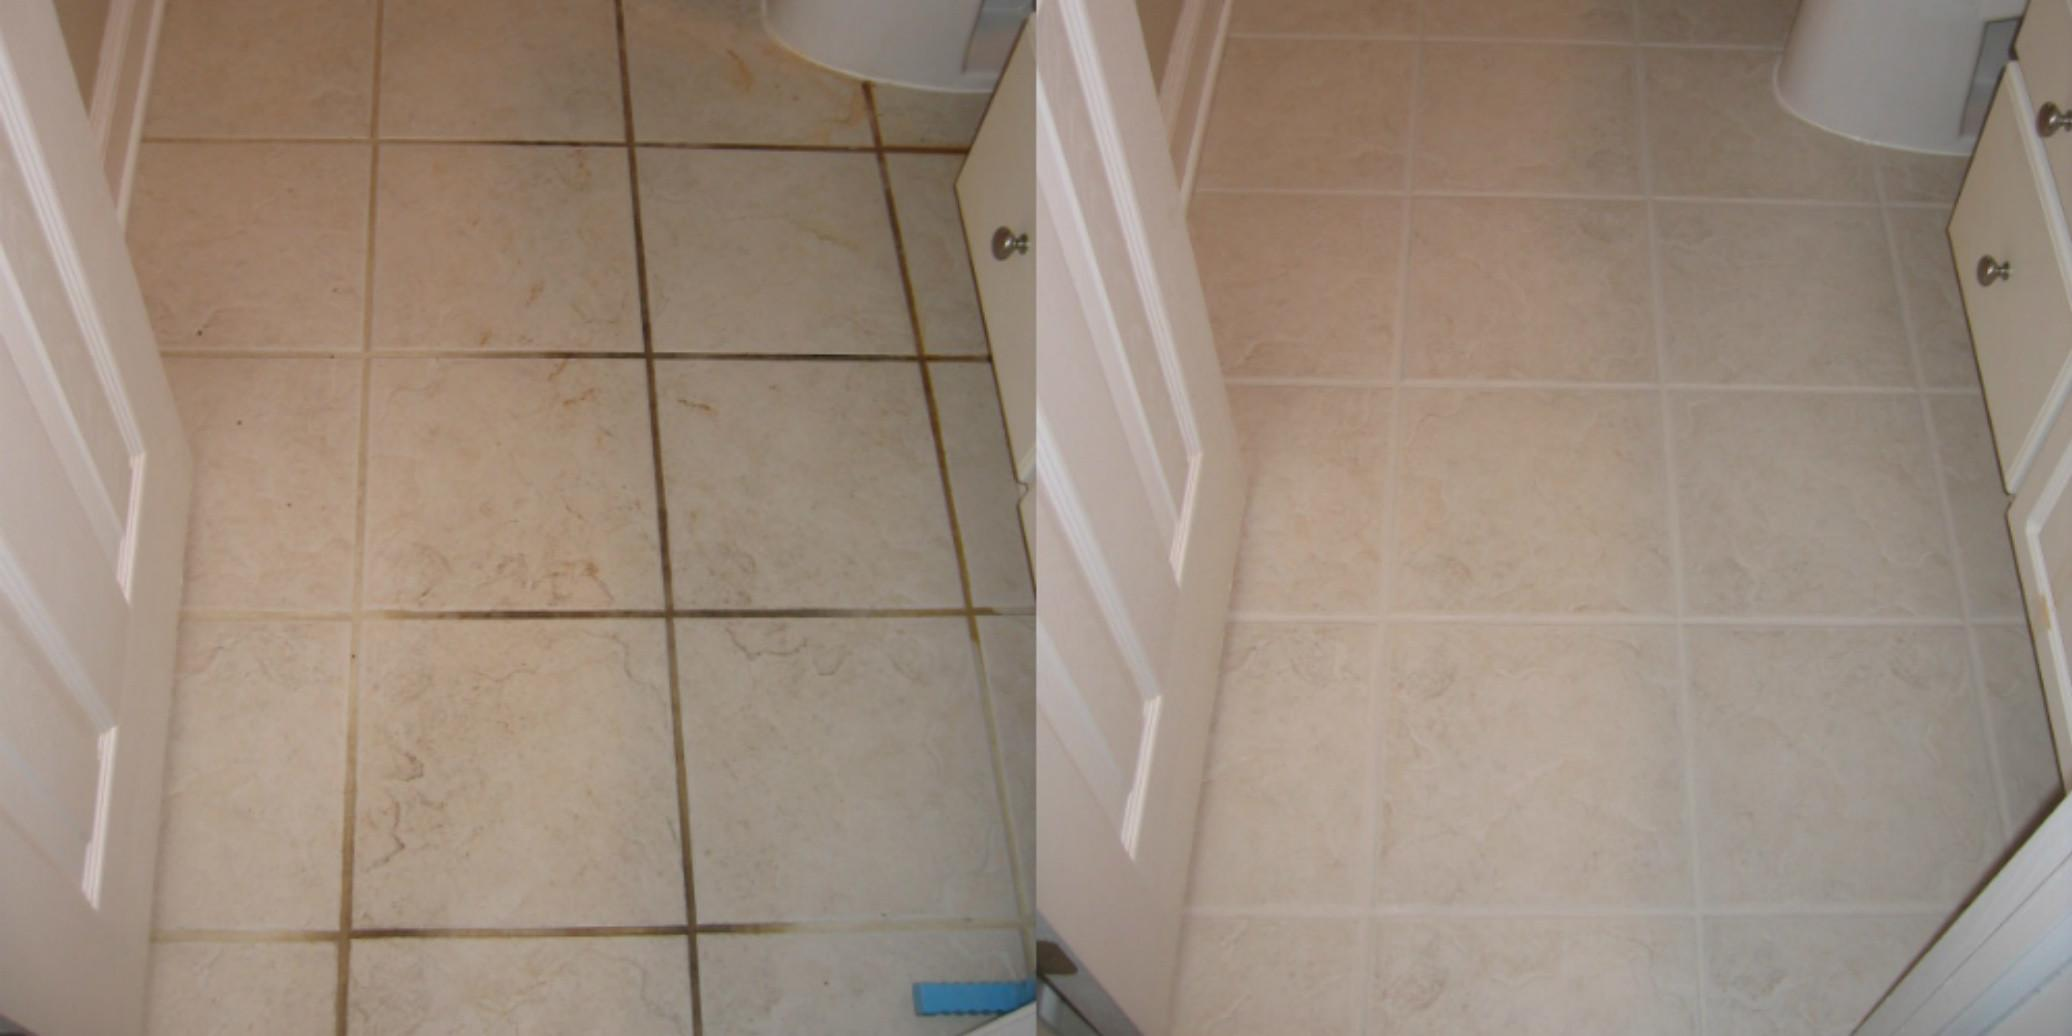 Cleaning Bathroom Floor Tile Grout Room Design Ideas